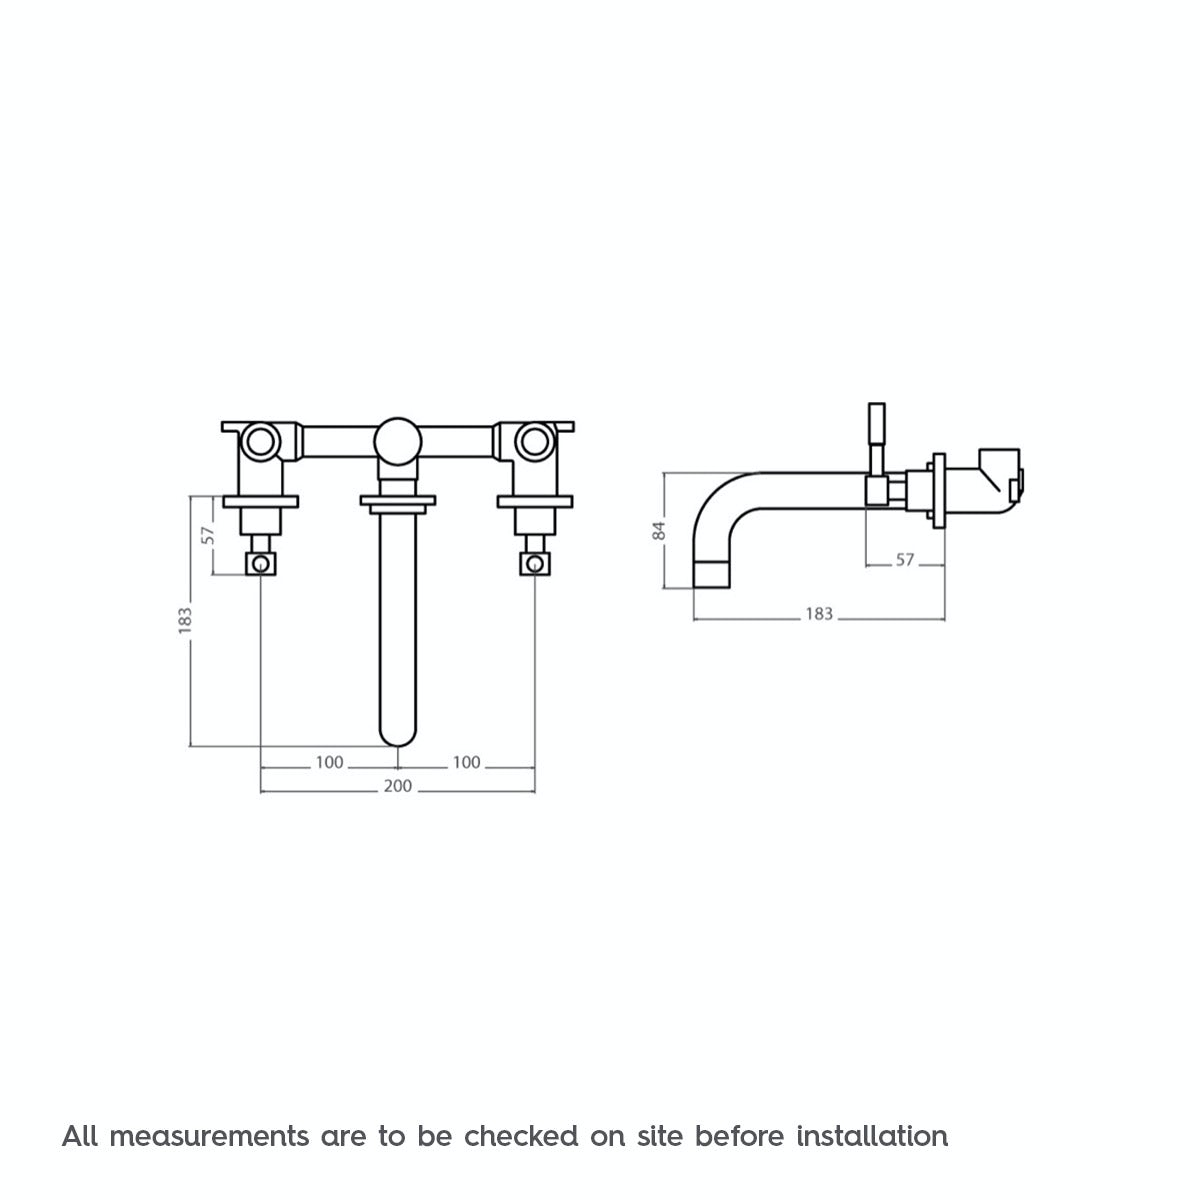 Dimensions for Secta wall mounted basin mixer tap